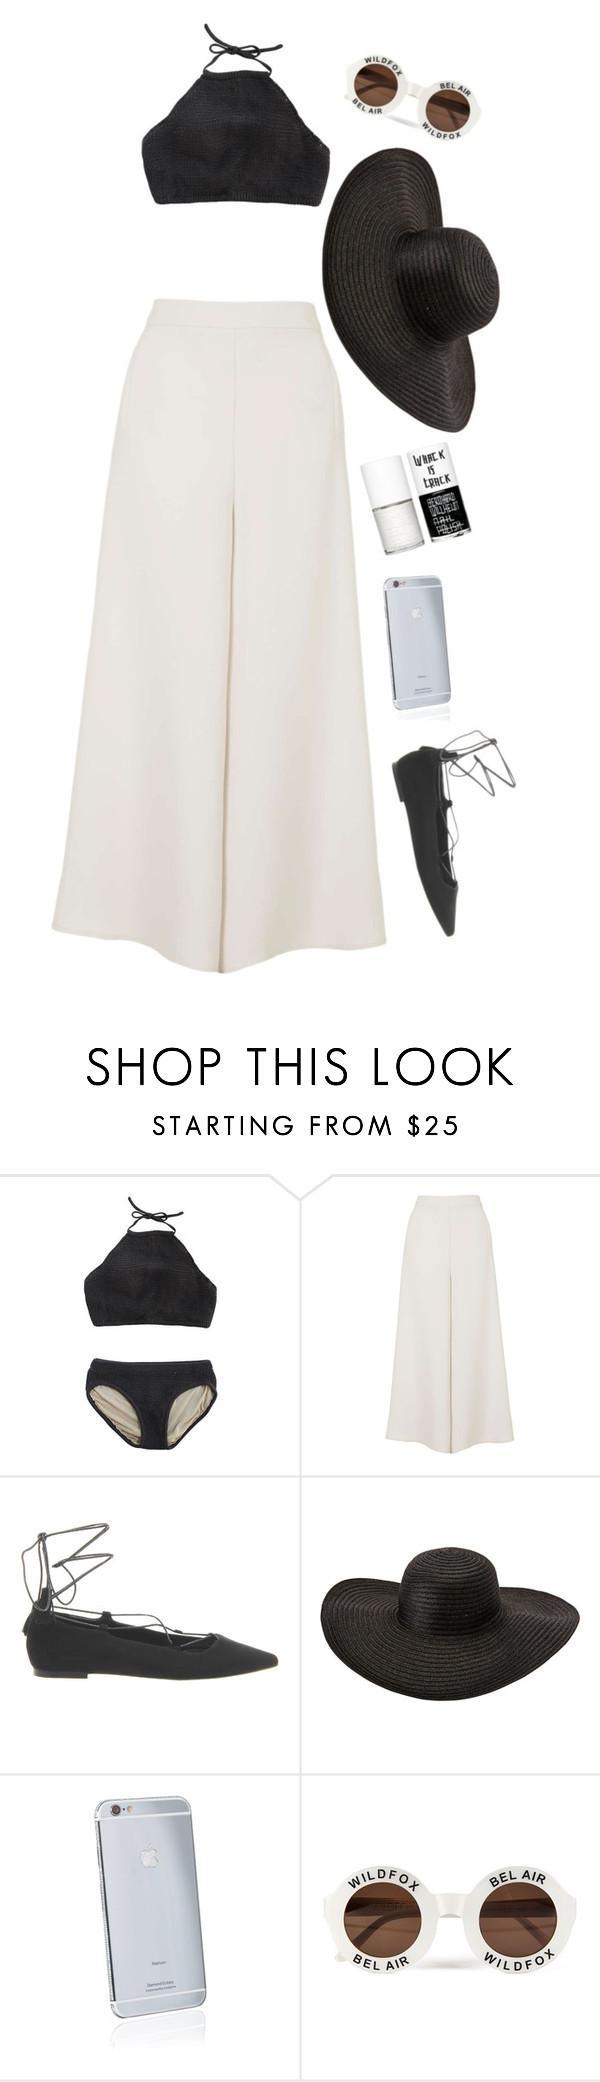 """Vacation"" by comiz ❤ liked on Polyvore featuring Topshop, Office, Goldgenie, Wildfox and Uslu Airlines"